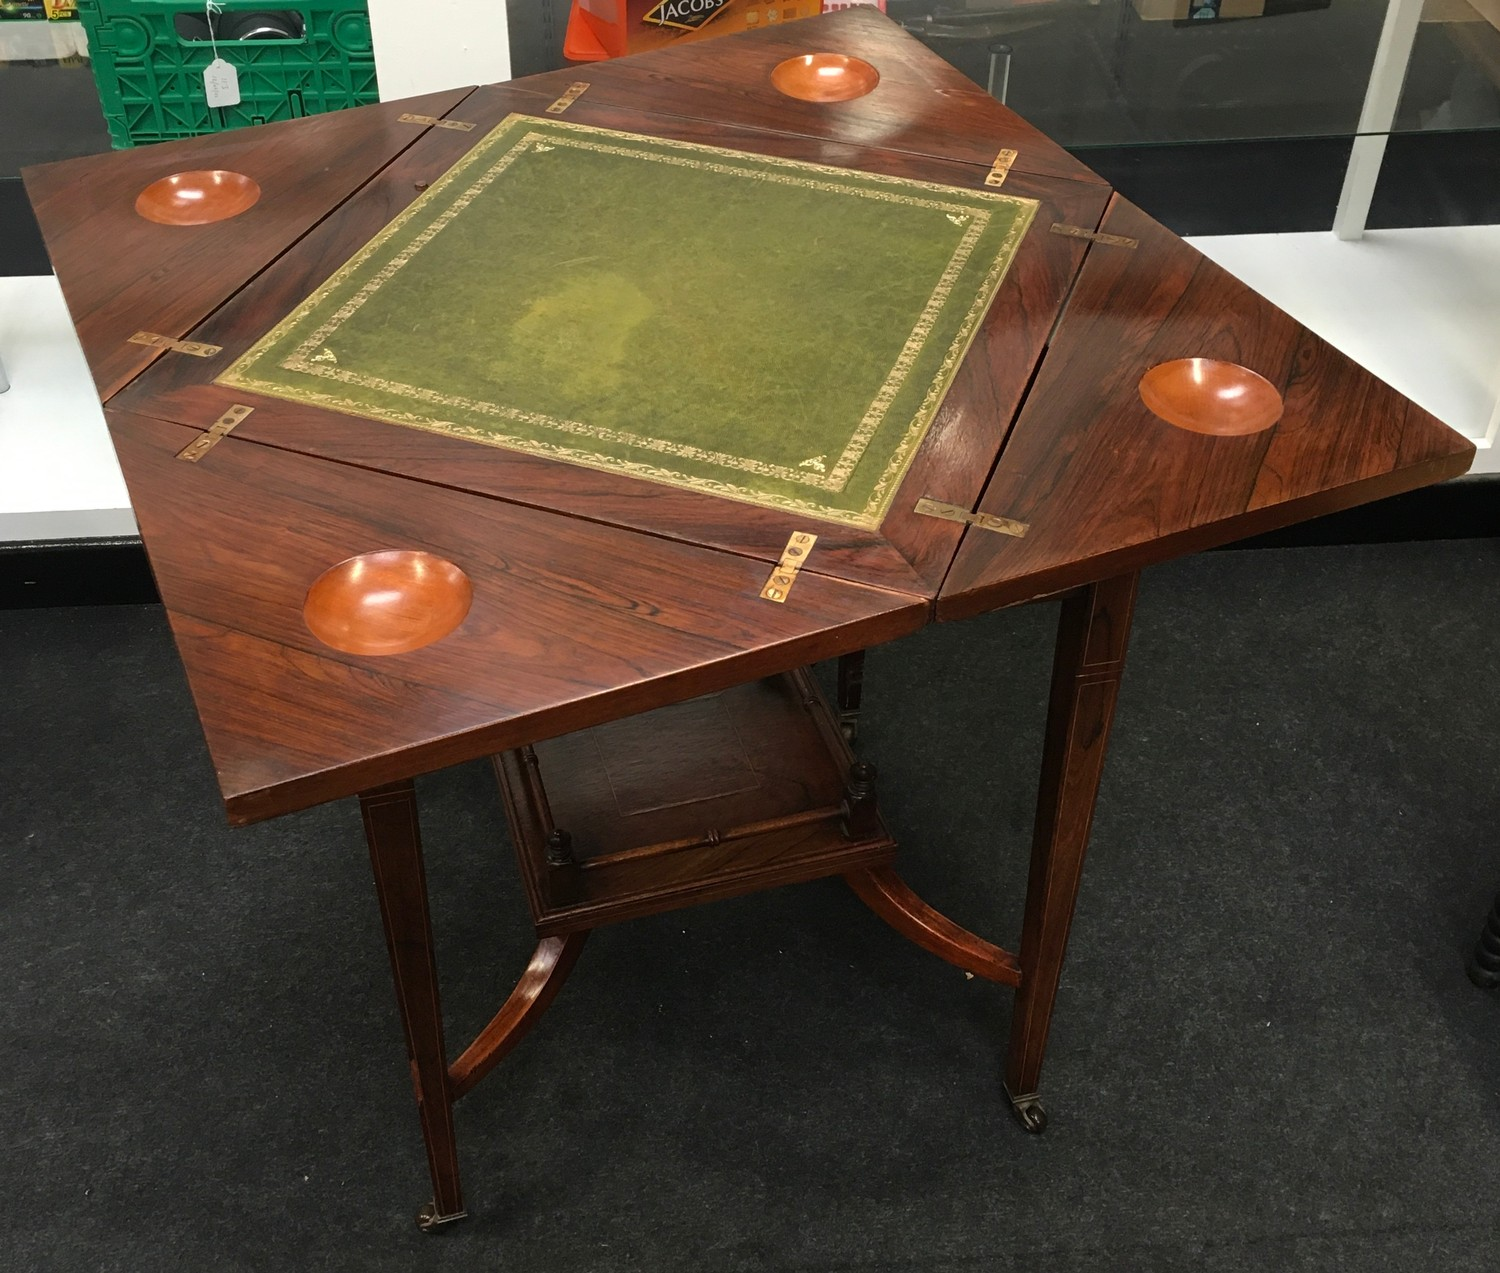 Edwardian inlaid rosewood envelope card table. The top decorated with urns and scrolled flowers, - Image 3 of 7